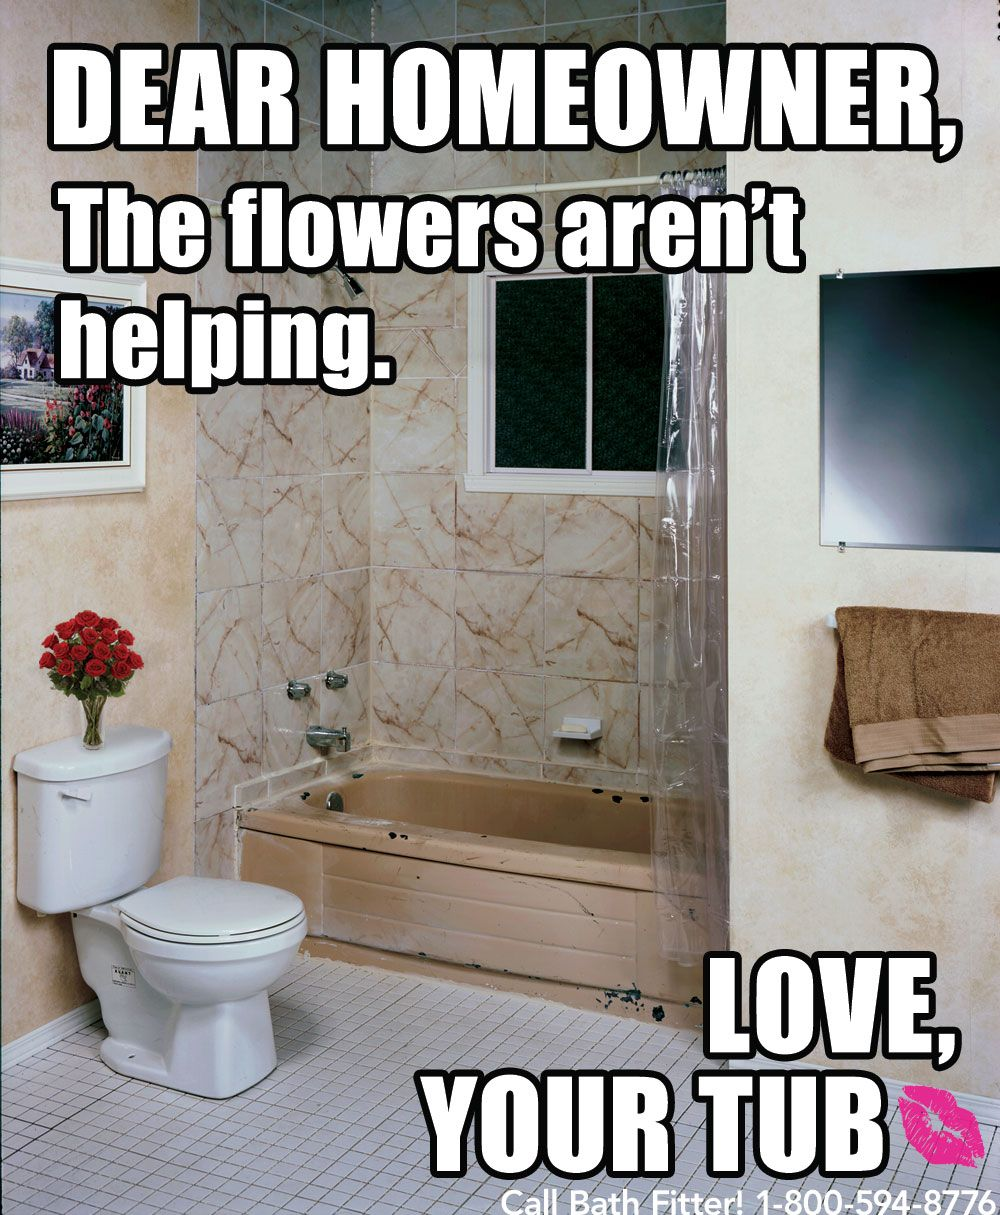 Flowers can only do so much. #remodeling #diy #fail #meme ... on funny concrete memes, funny tile memes, funny jewelry memes, funny lawn care memes, funny tools memes, funny automotive memes, funny home memes, funny equipment memes, funny repair memes, funny restaurants memes, funny manufacturing memes, funny handyman memes, funny air conditioning memes, funny leasing memes, funny carpentry memes, funny paint memes, funny decorating memes, funny doors memes, funny service memes,